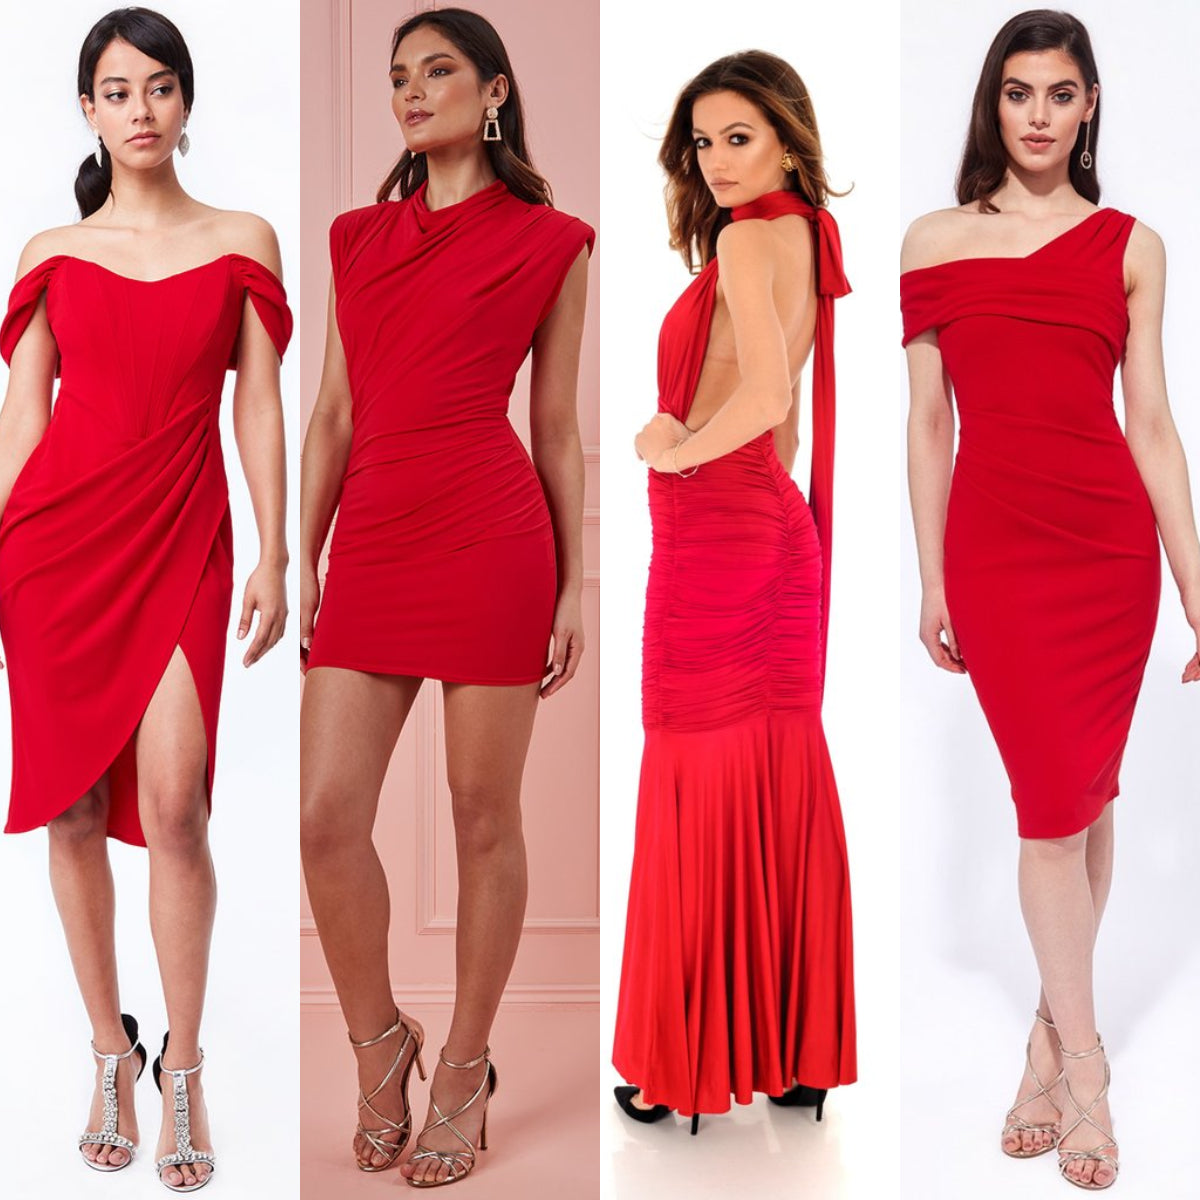 Red Dresses Date Night Outfit Ideas